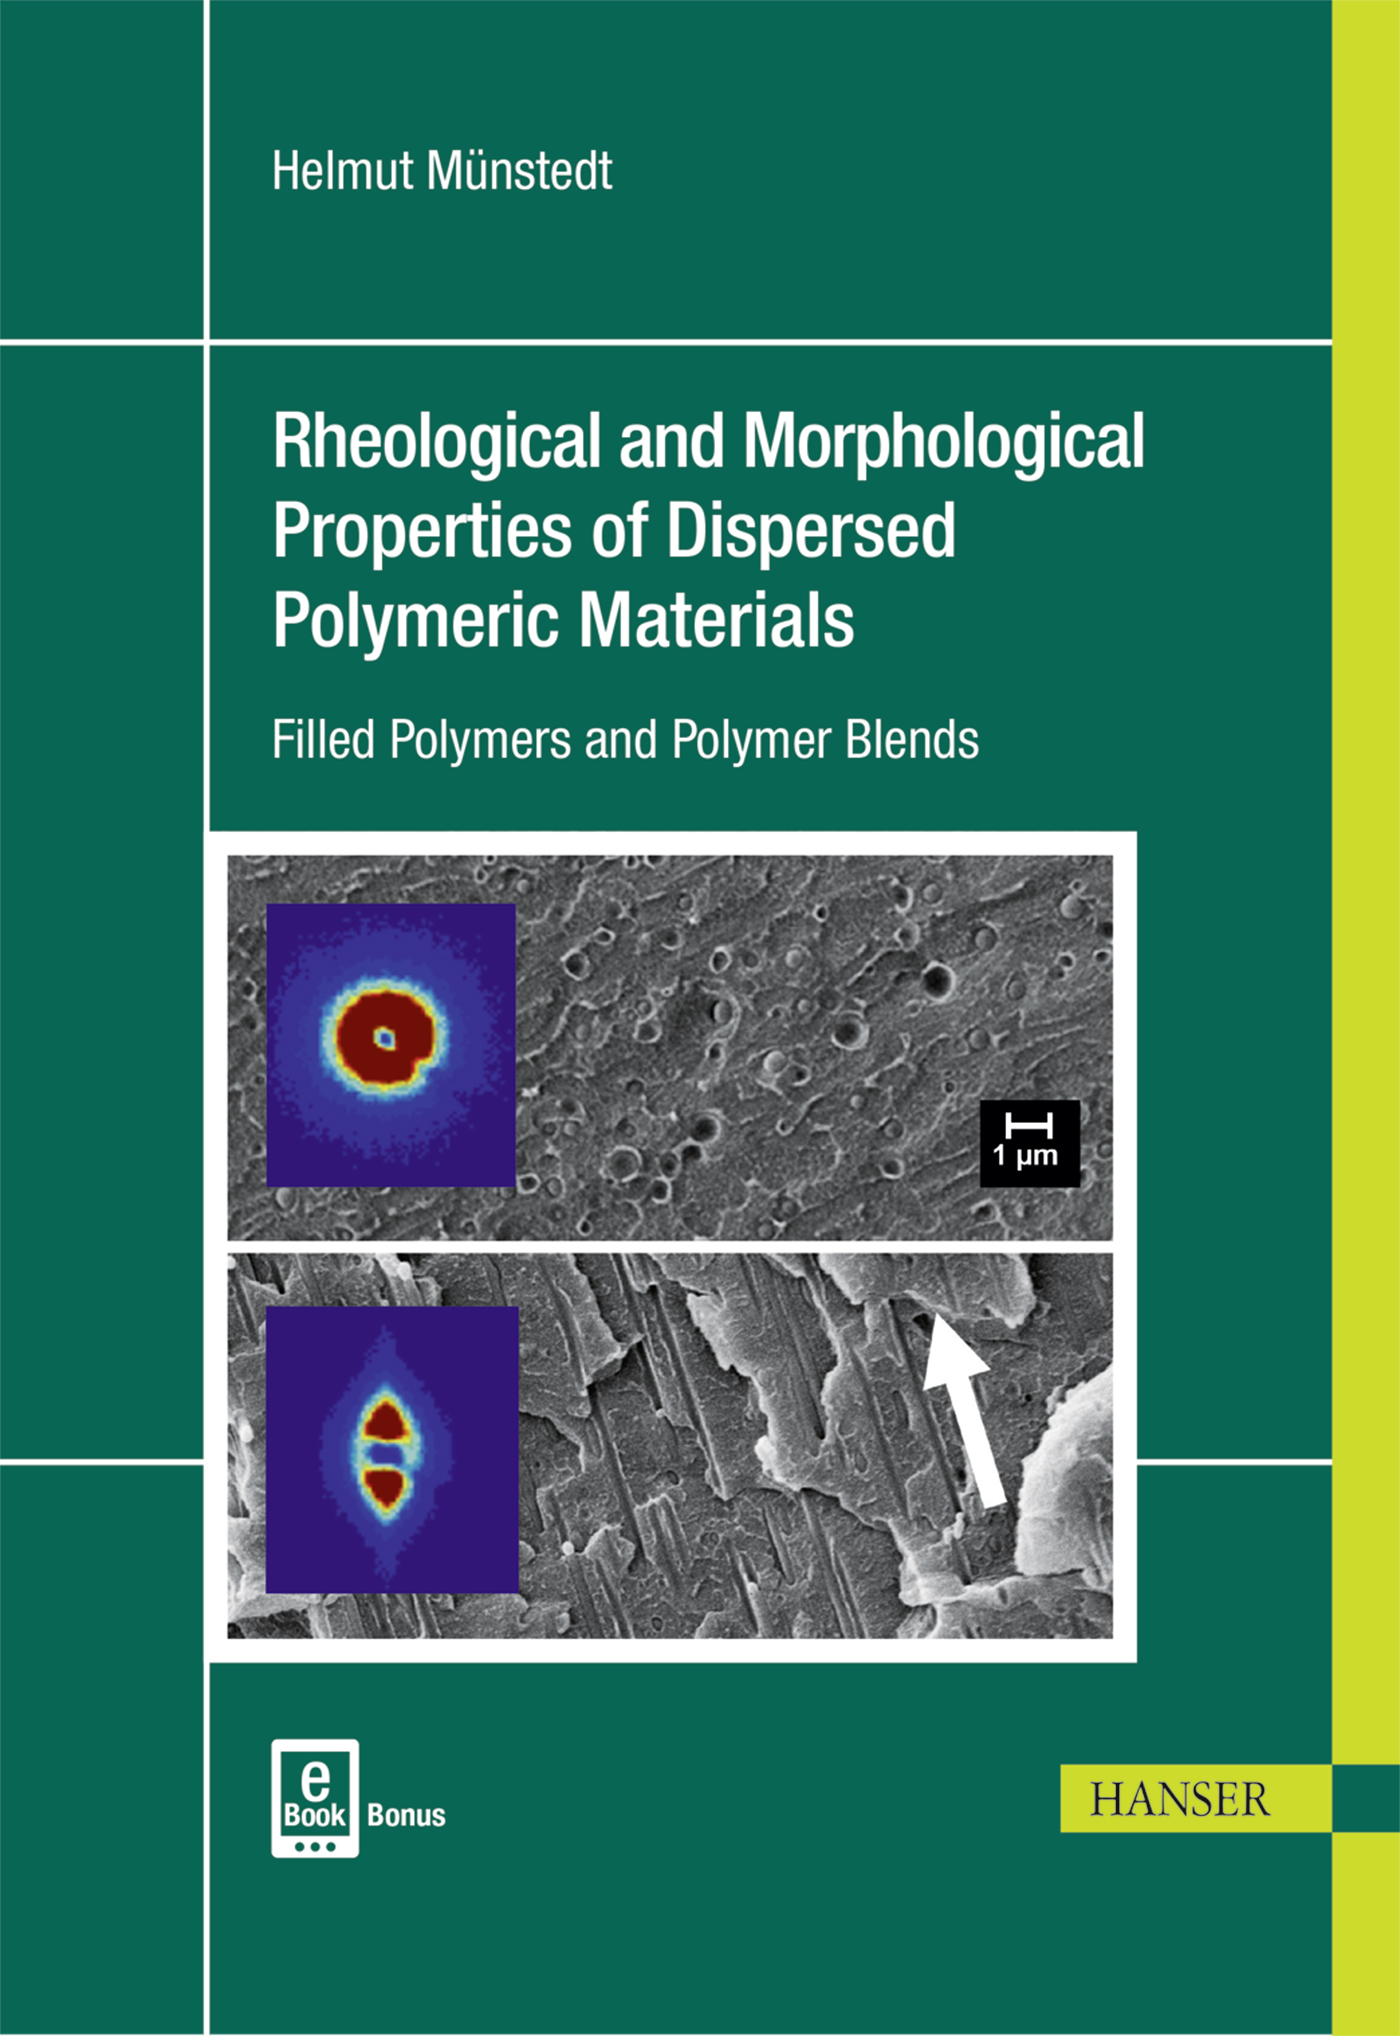 Münstedt, Rheological and Morphological Properties of Dispersed Polymeric Materials, 978-1-56990-607-1